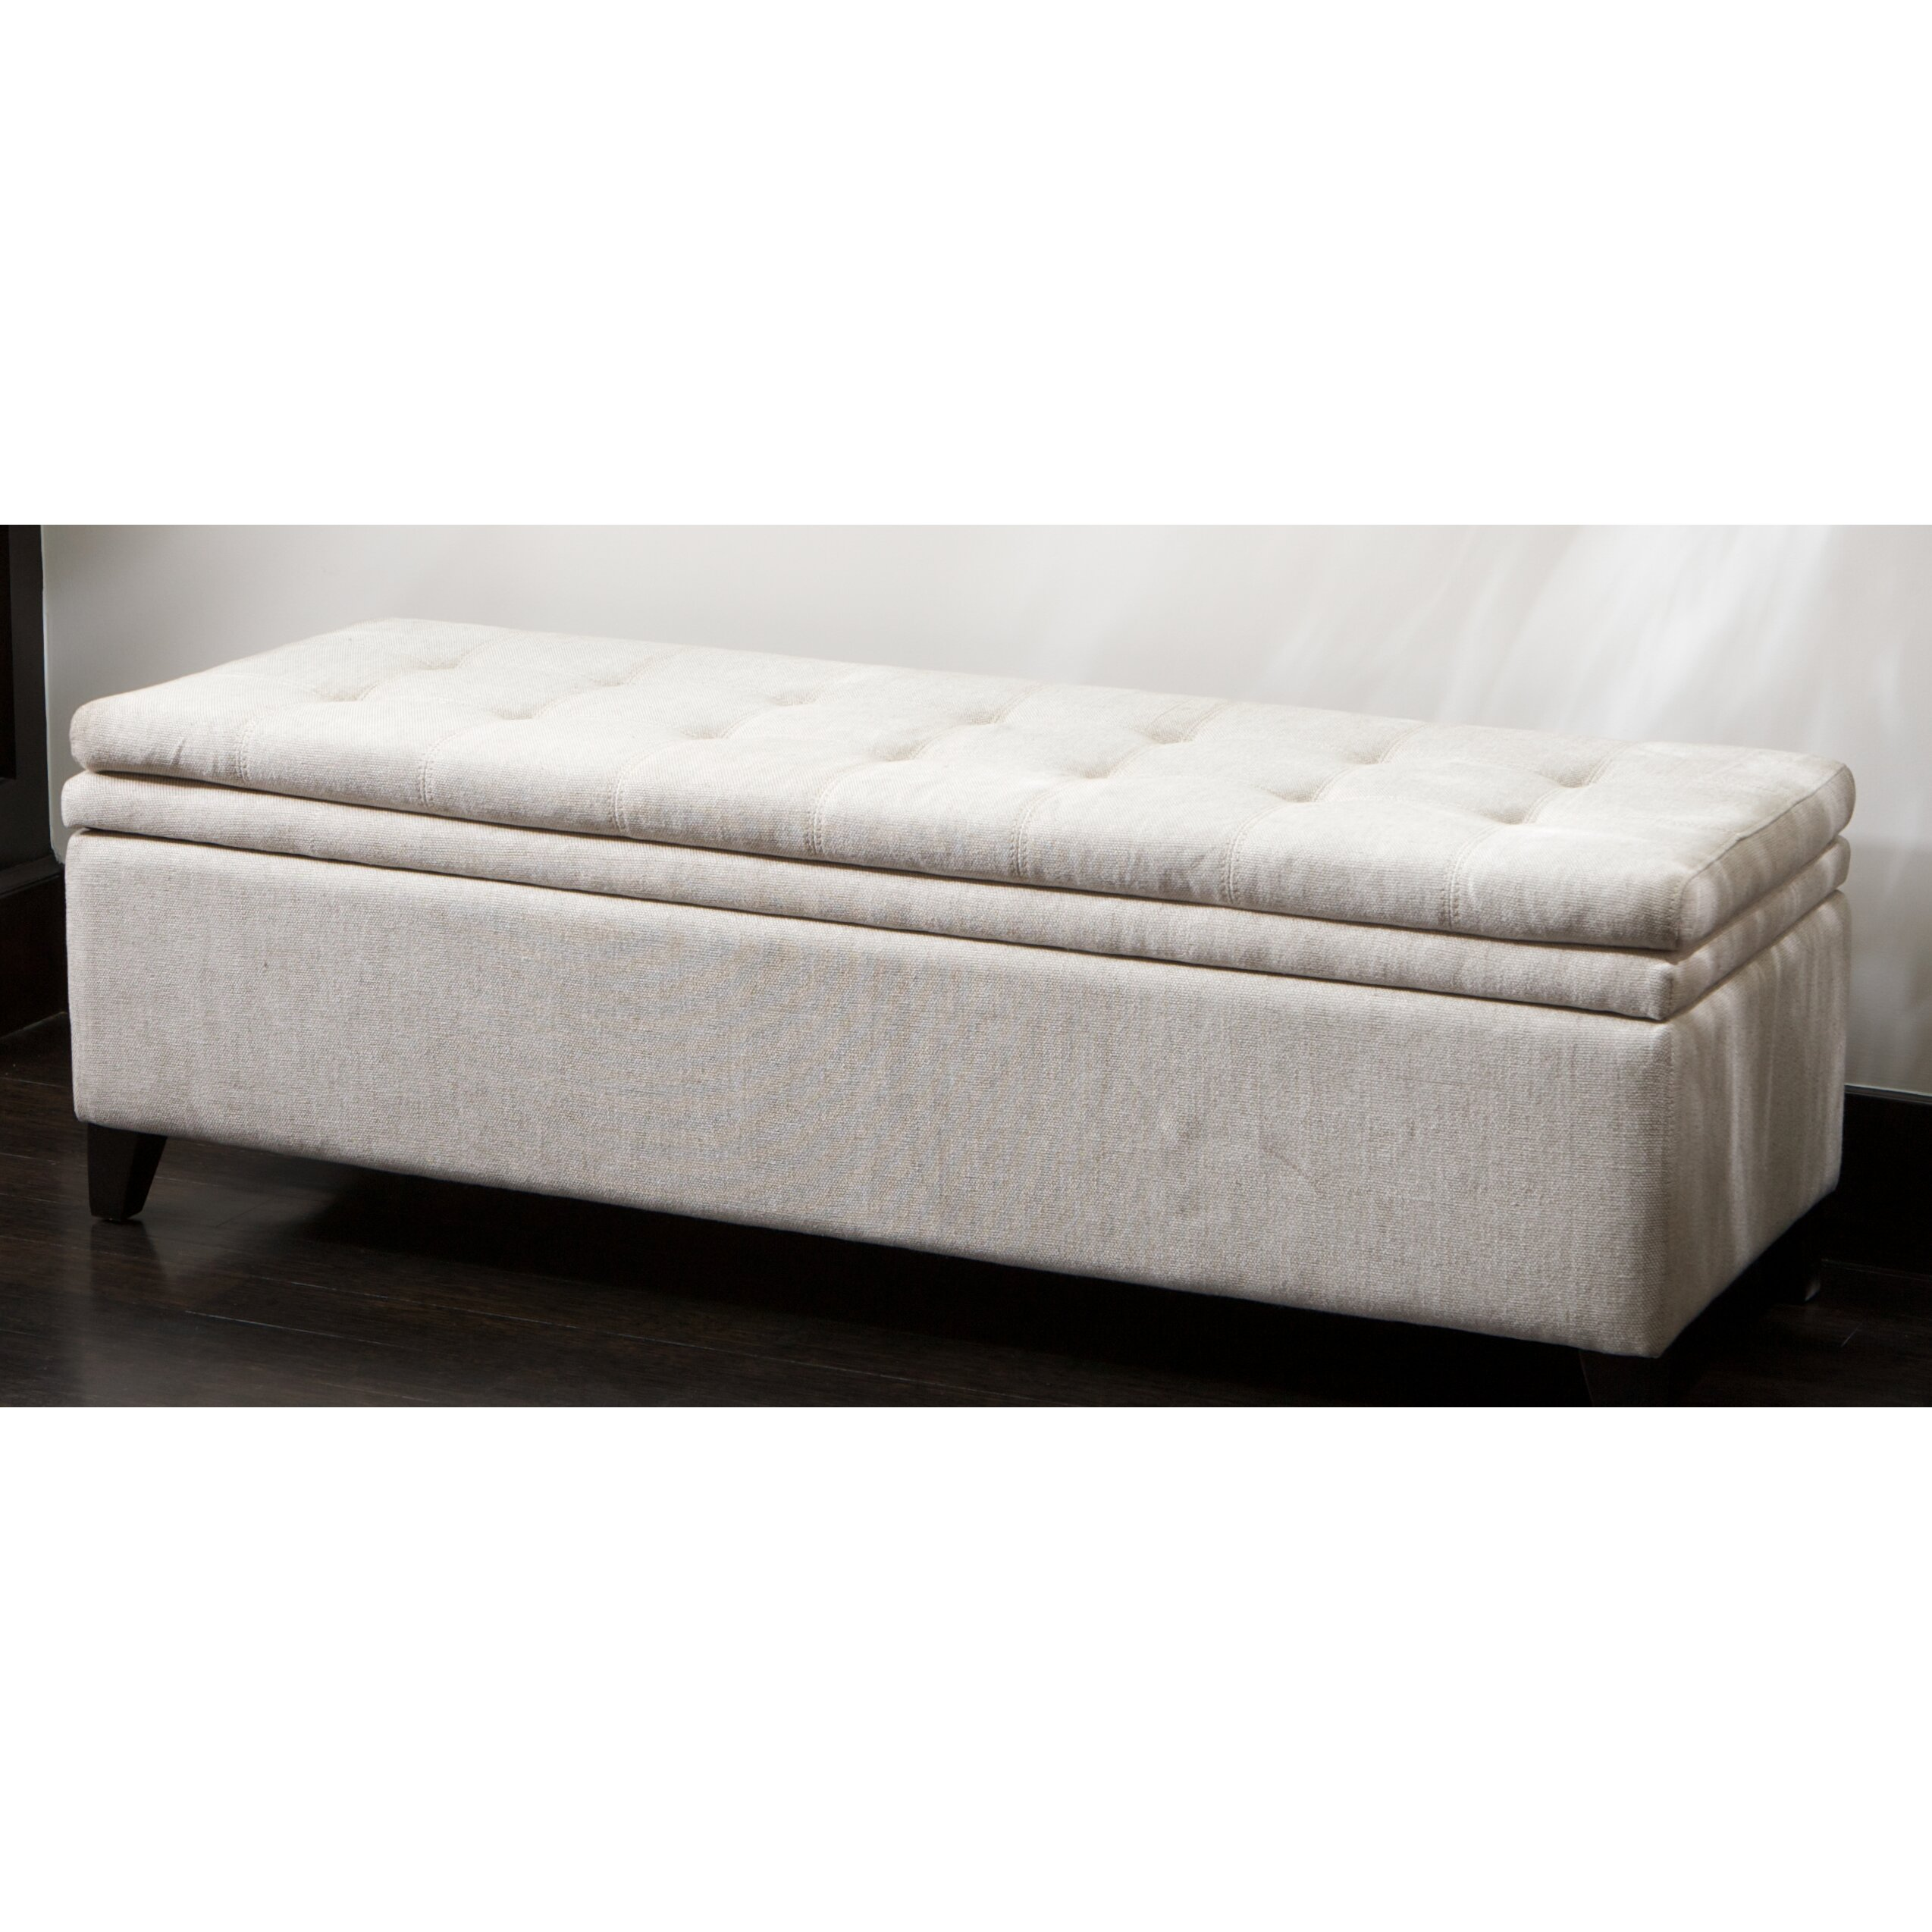 Three Posts Polycarp Storage Ottoman Reviews: Three Posts Loganton Storage Bench & Reviews